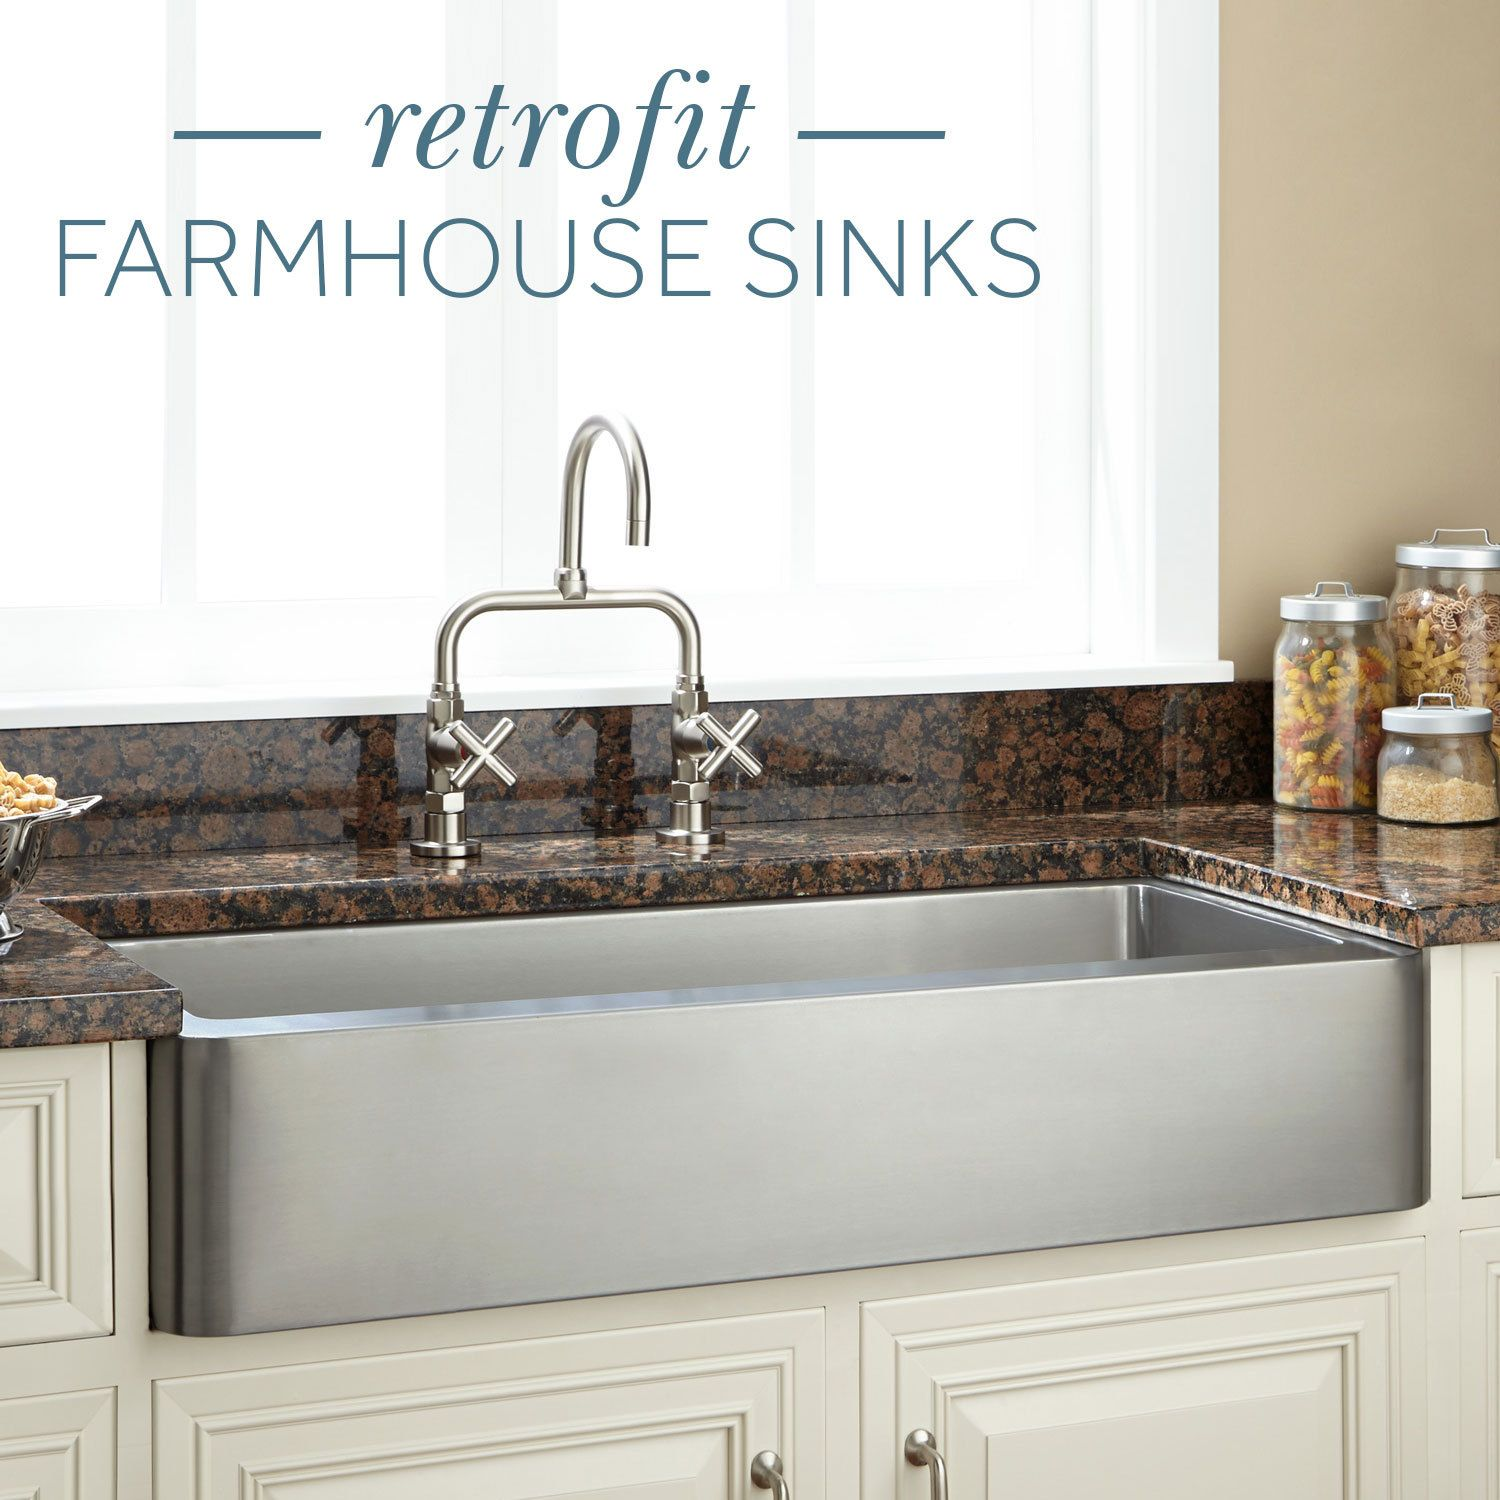 Because Of Their Shorter Apron You Can Fit A Retrofit Farmhouse